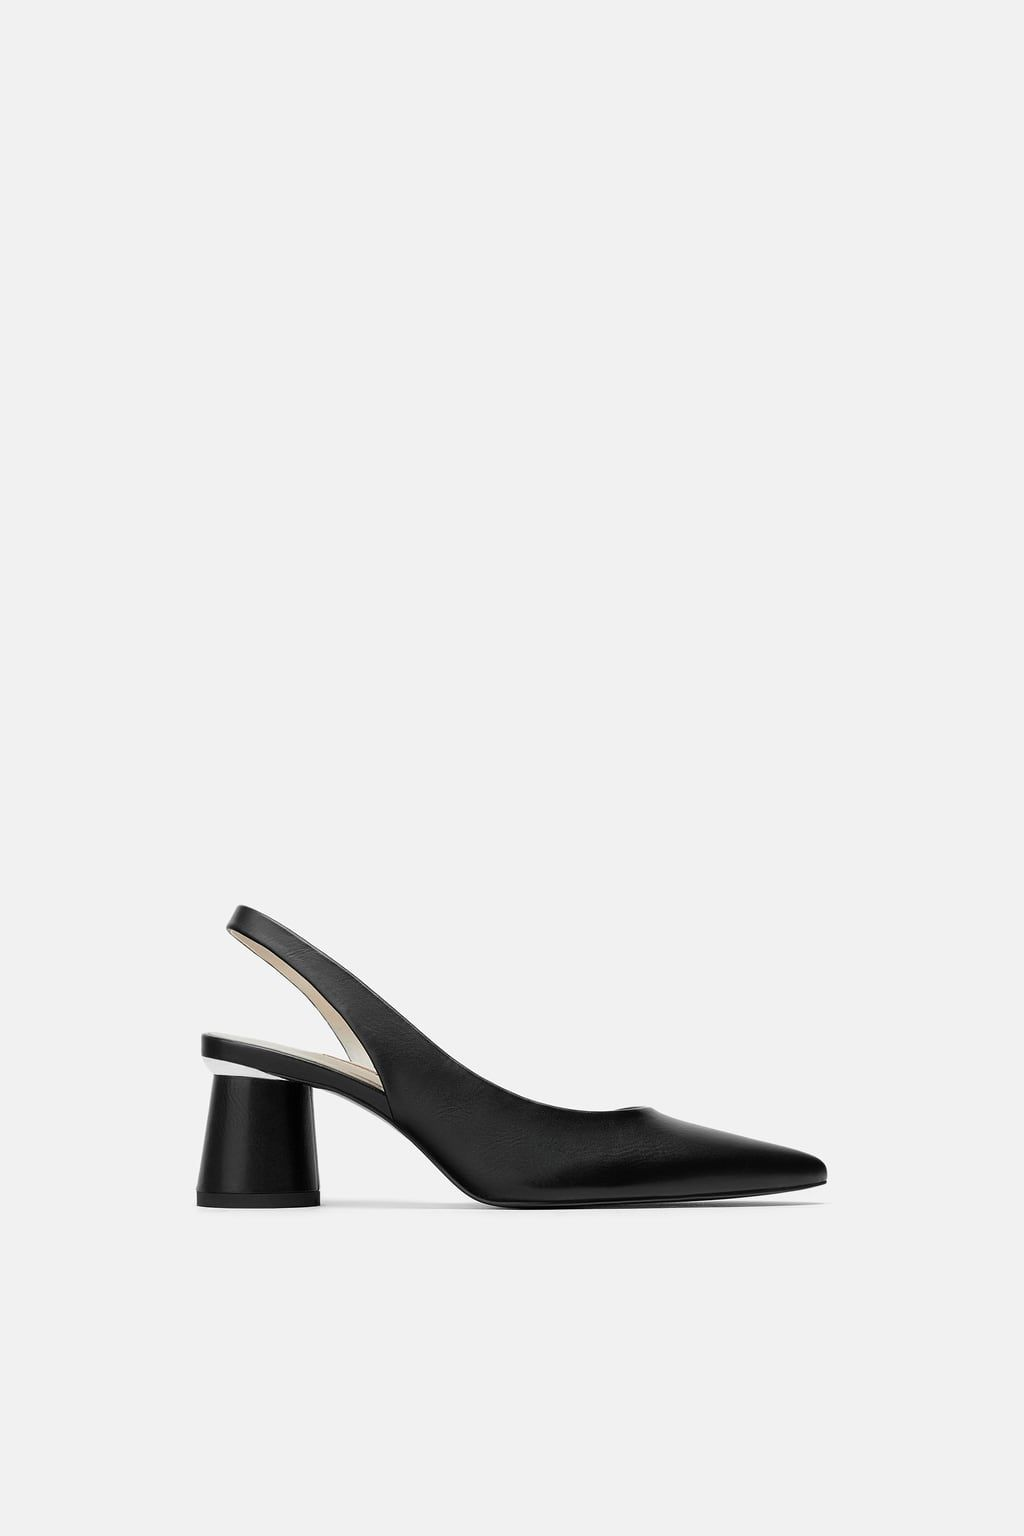 Faux Patent Leather Slingback Heels View All Shoes Woman Zara Turkey Heels Slingback Heel Patent Leather Heels